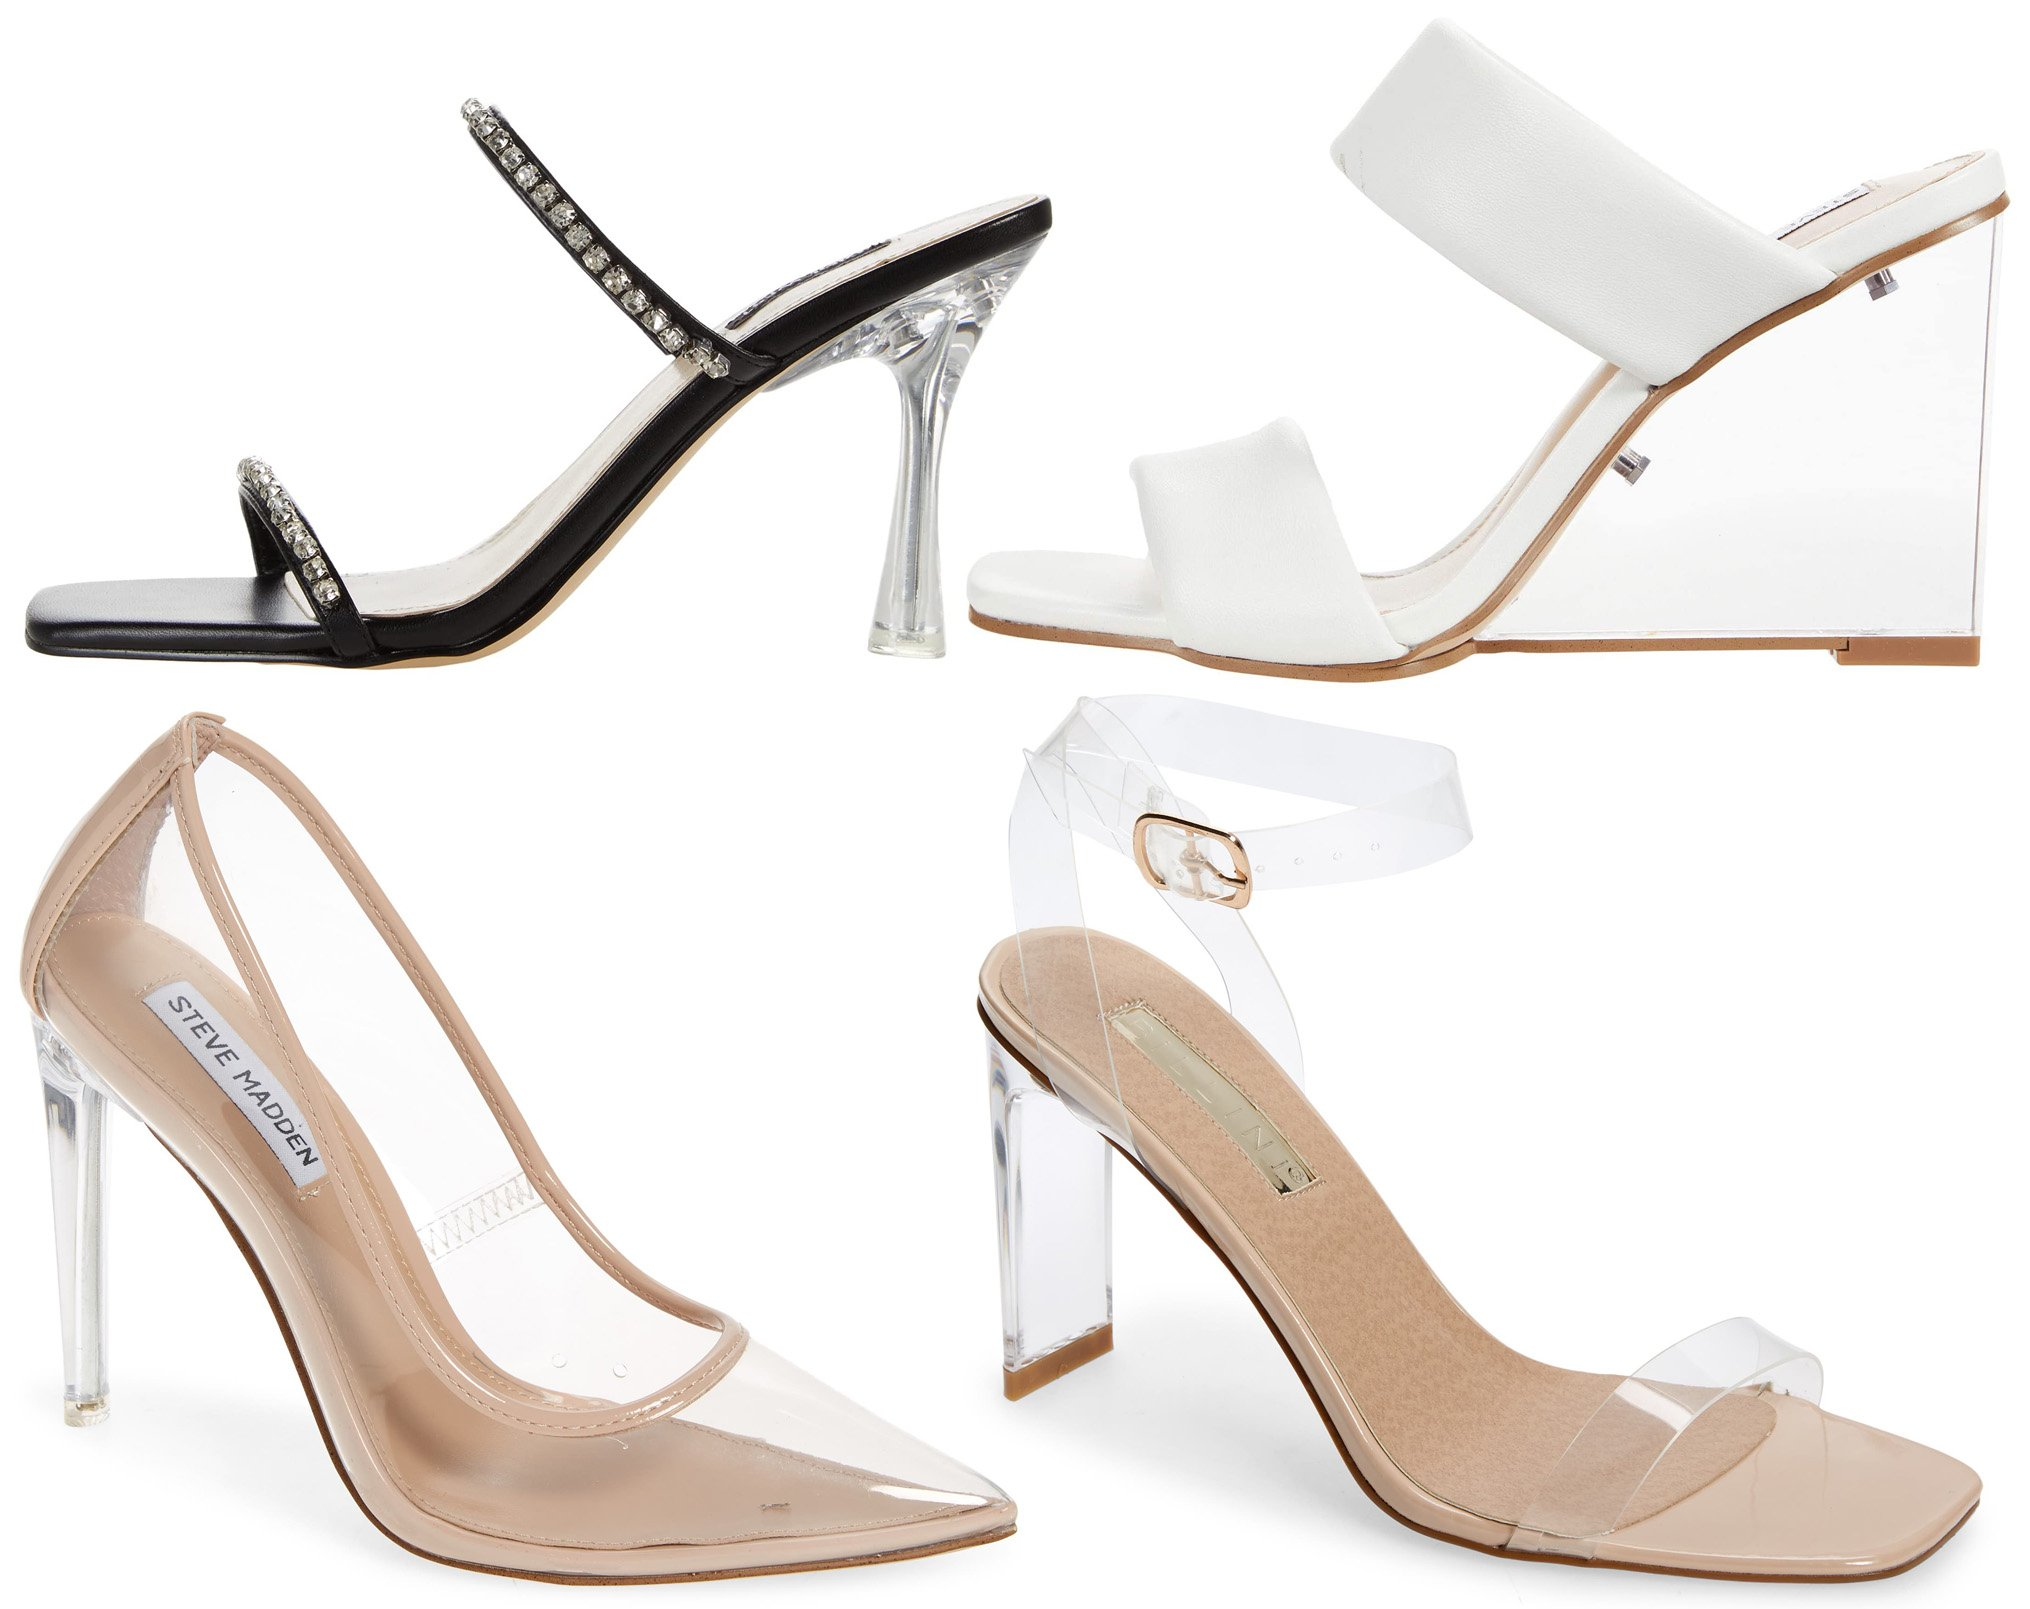 Look chic without breaking the bank with tough and durable PVC heels